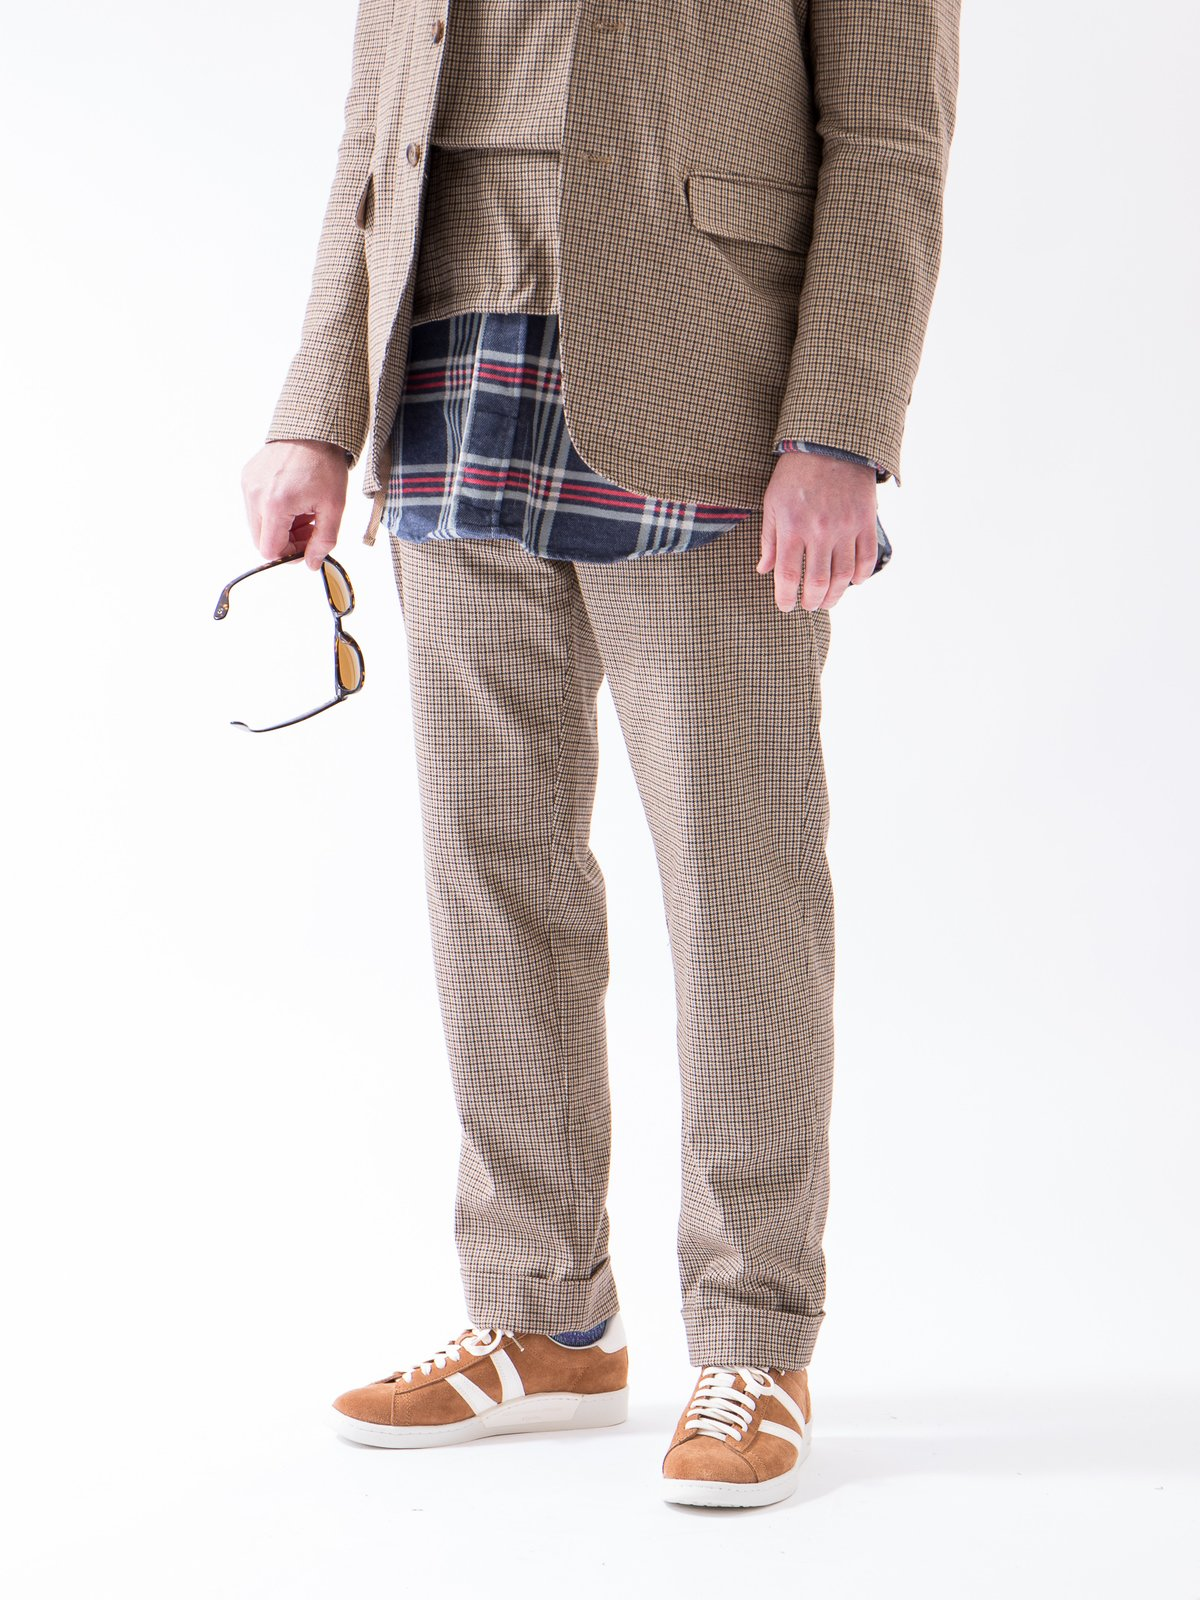 Brown Wool Poly Gunclub Check Andover Pant - Image 3